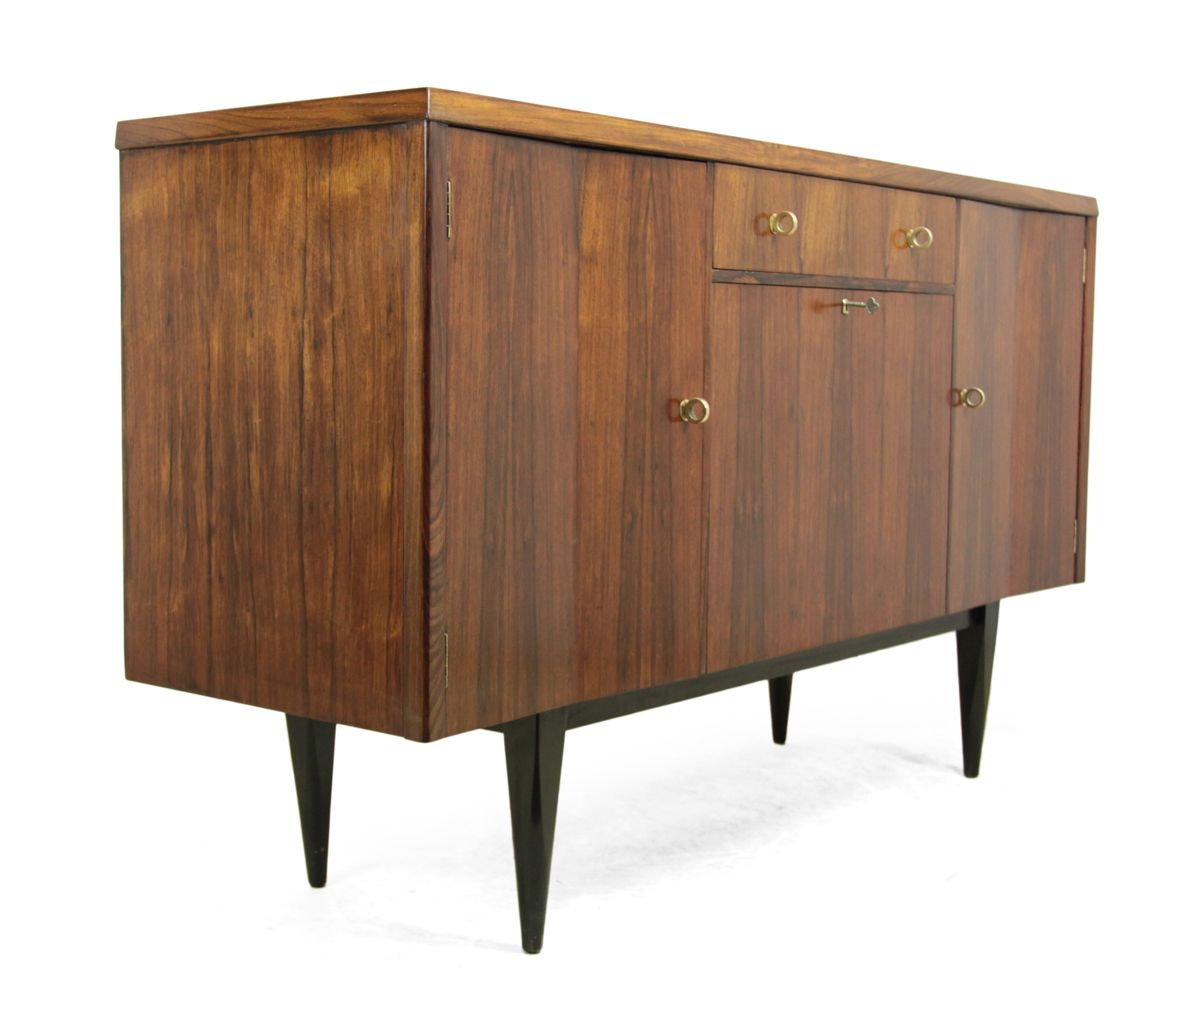 mid century rosewood sideboard with bar compartment 1960s for sale at pamono. Black Bedroom Furniture Sets. Home Design Ideas